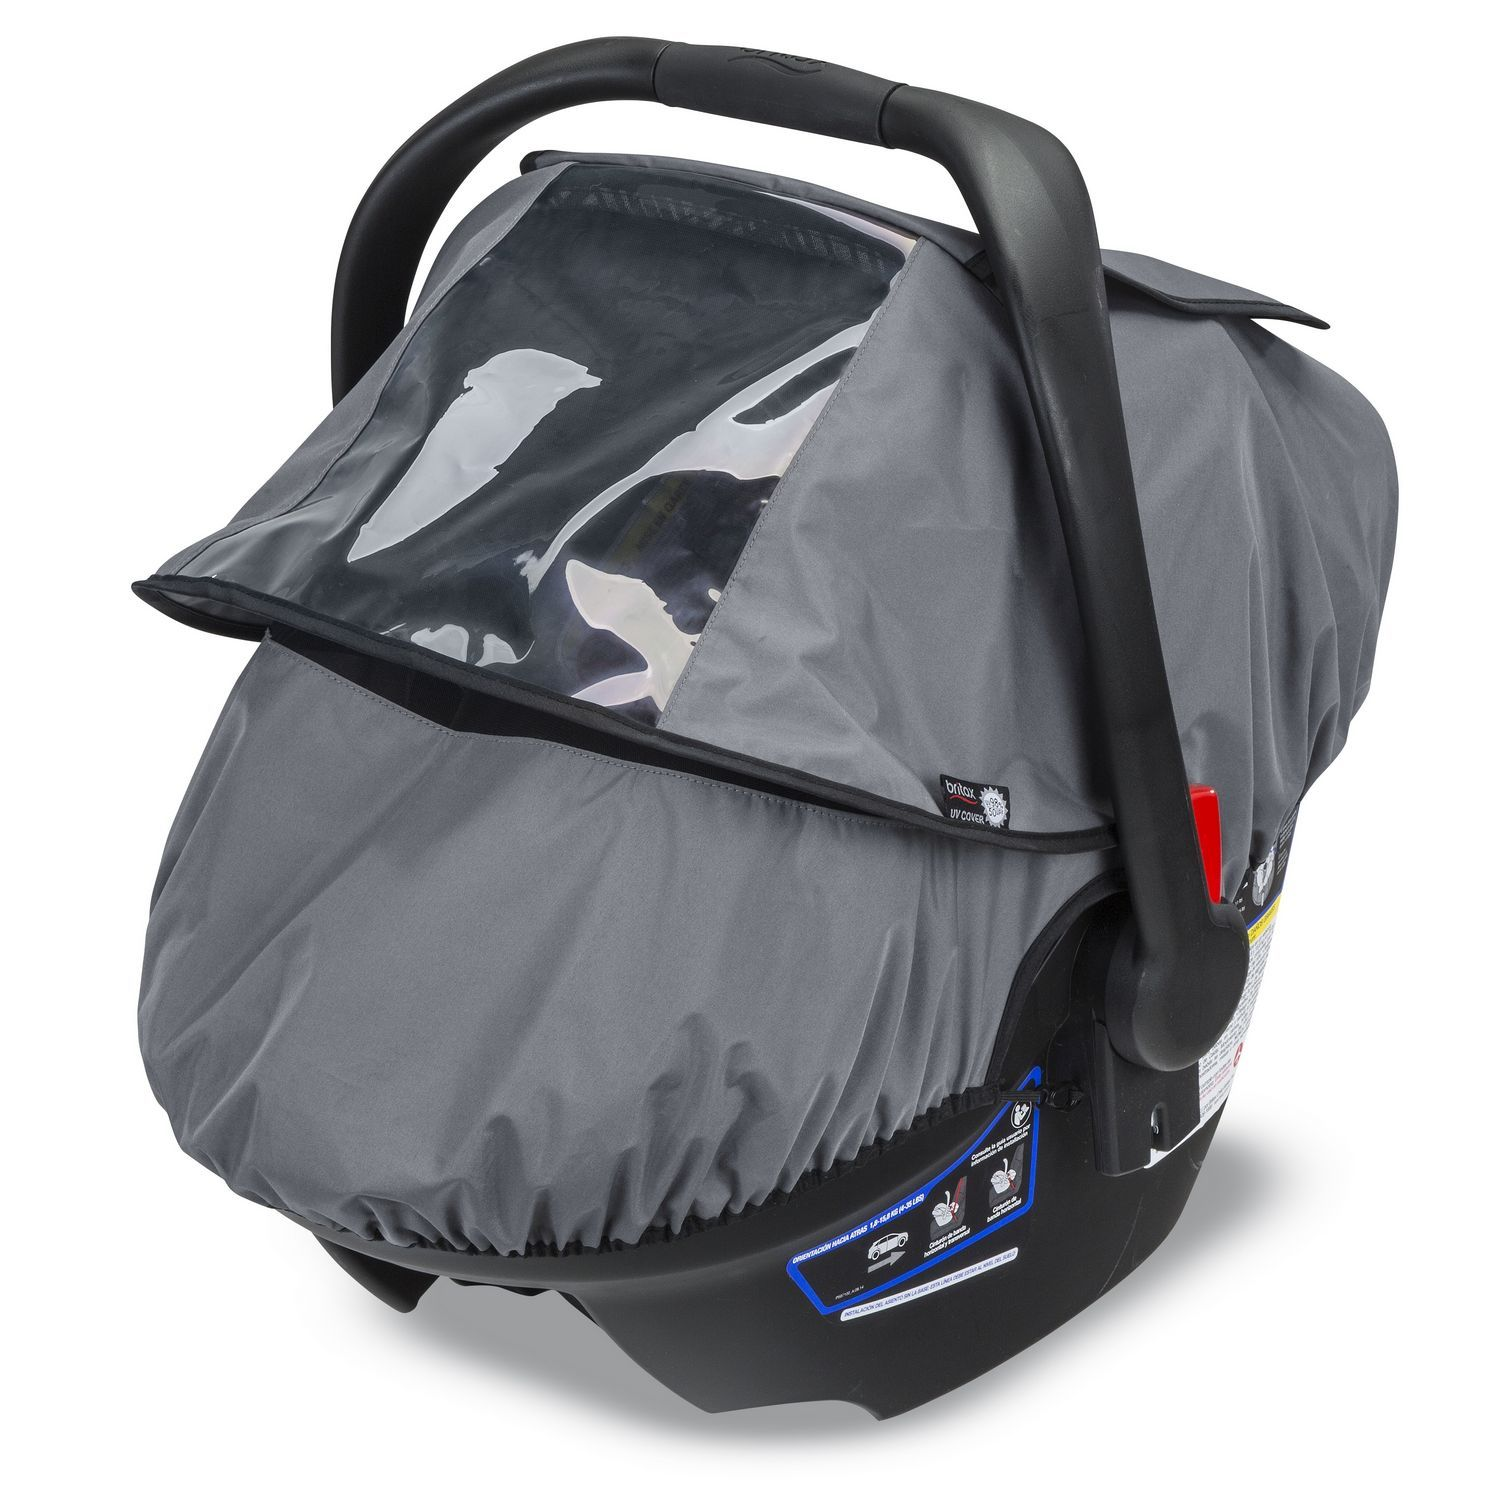 Britax B-Covered All-Weather Car Seat Cover  sc 1 st  Walmart.com & Baby Car Seat Covers - Walmart.com